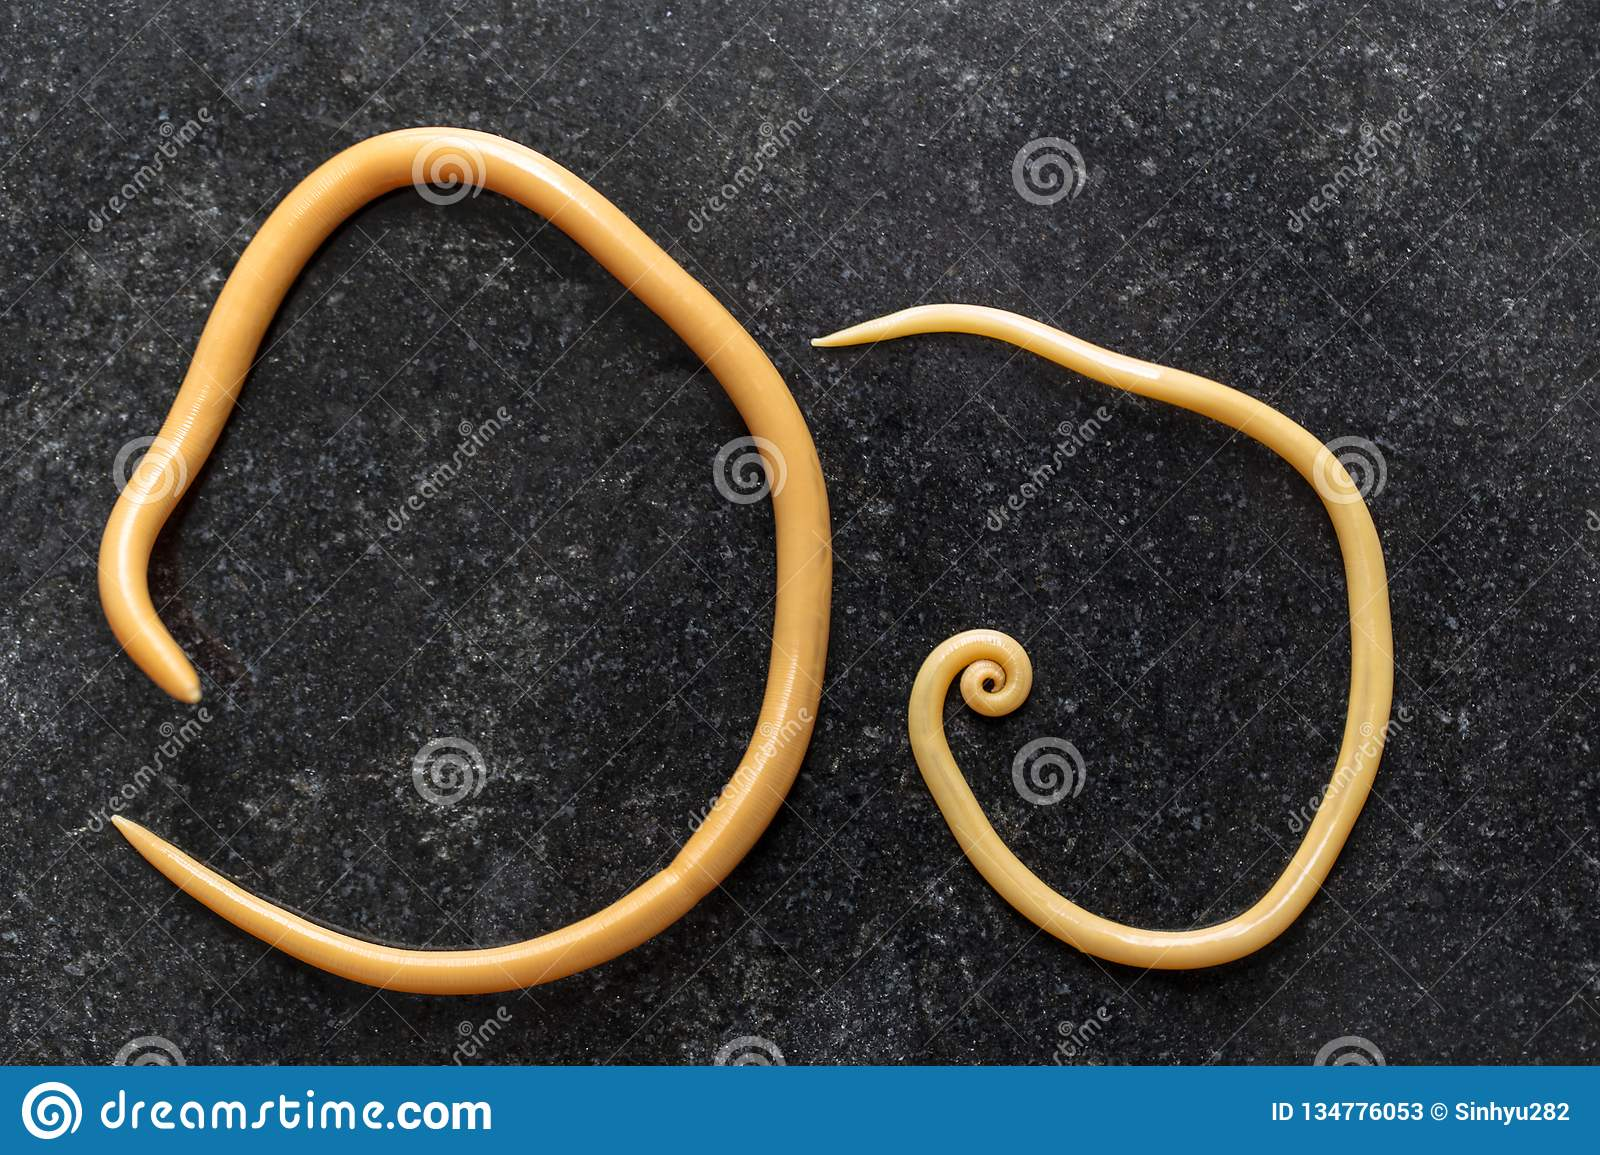 ascaris lumbricoides cause